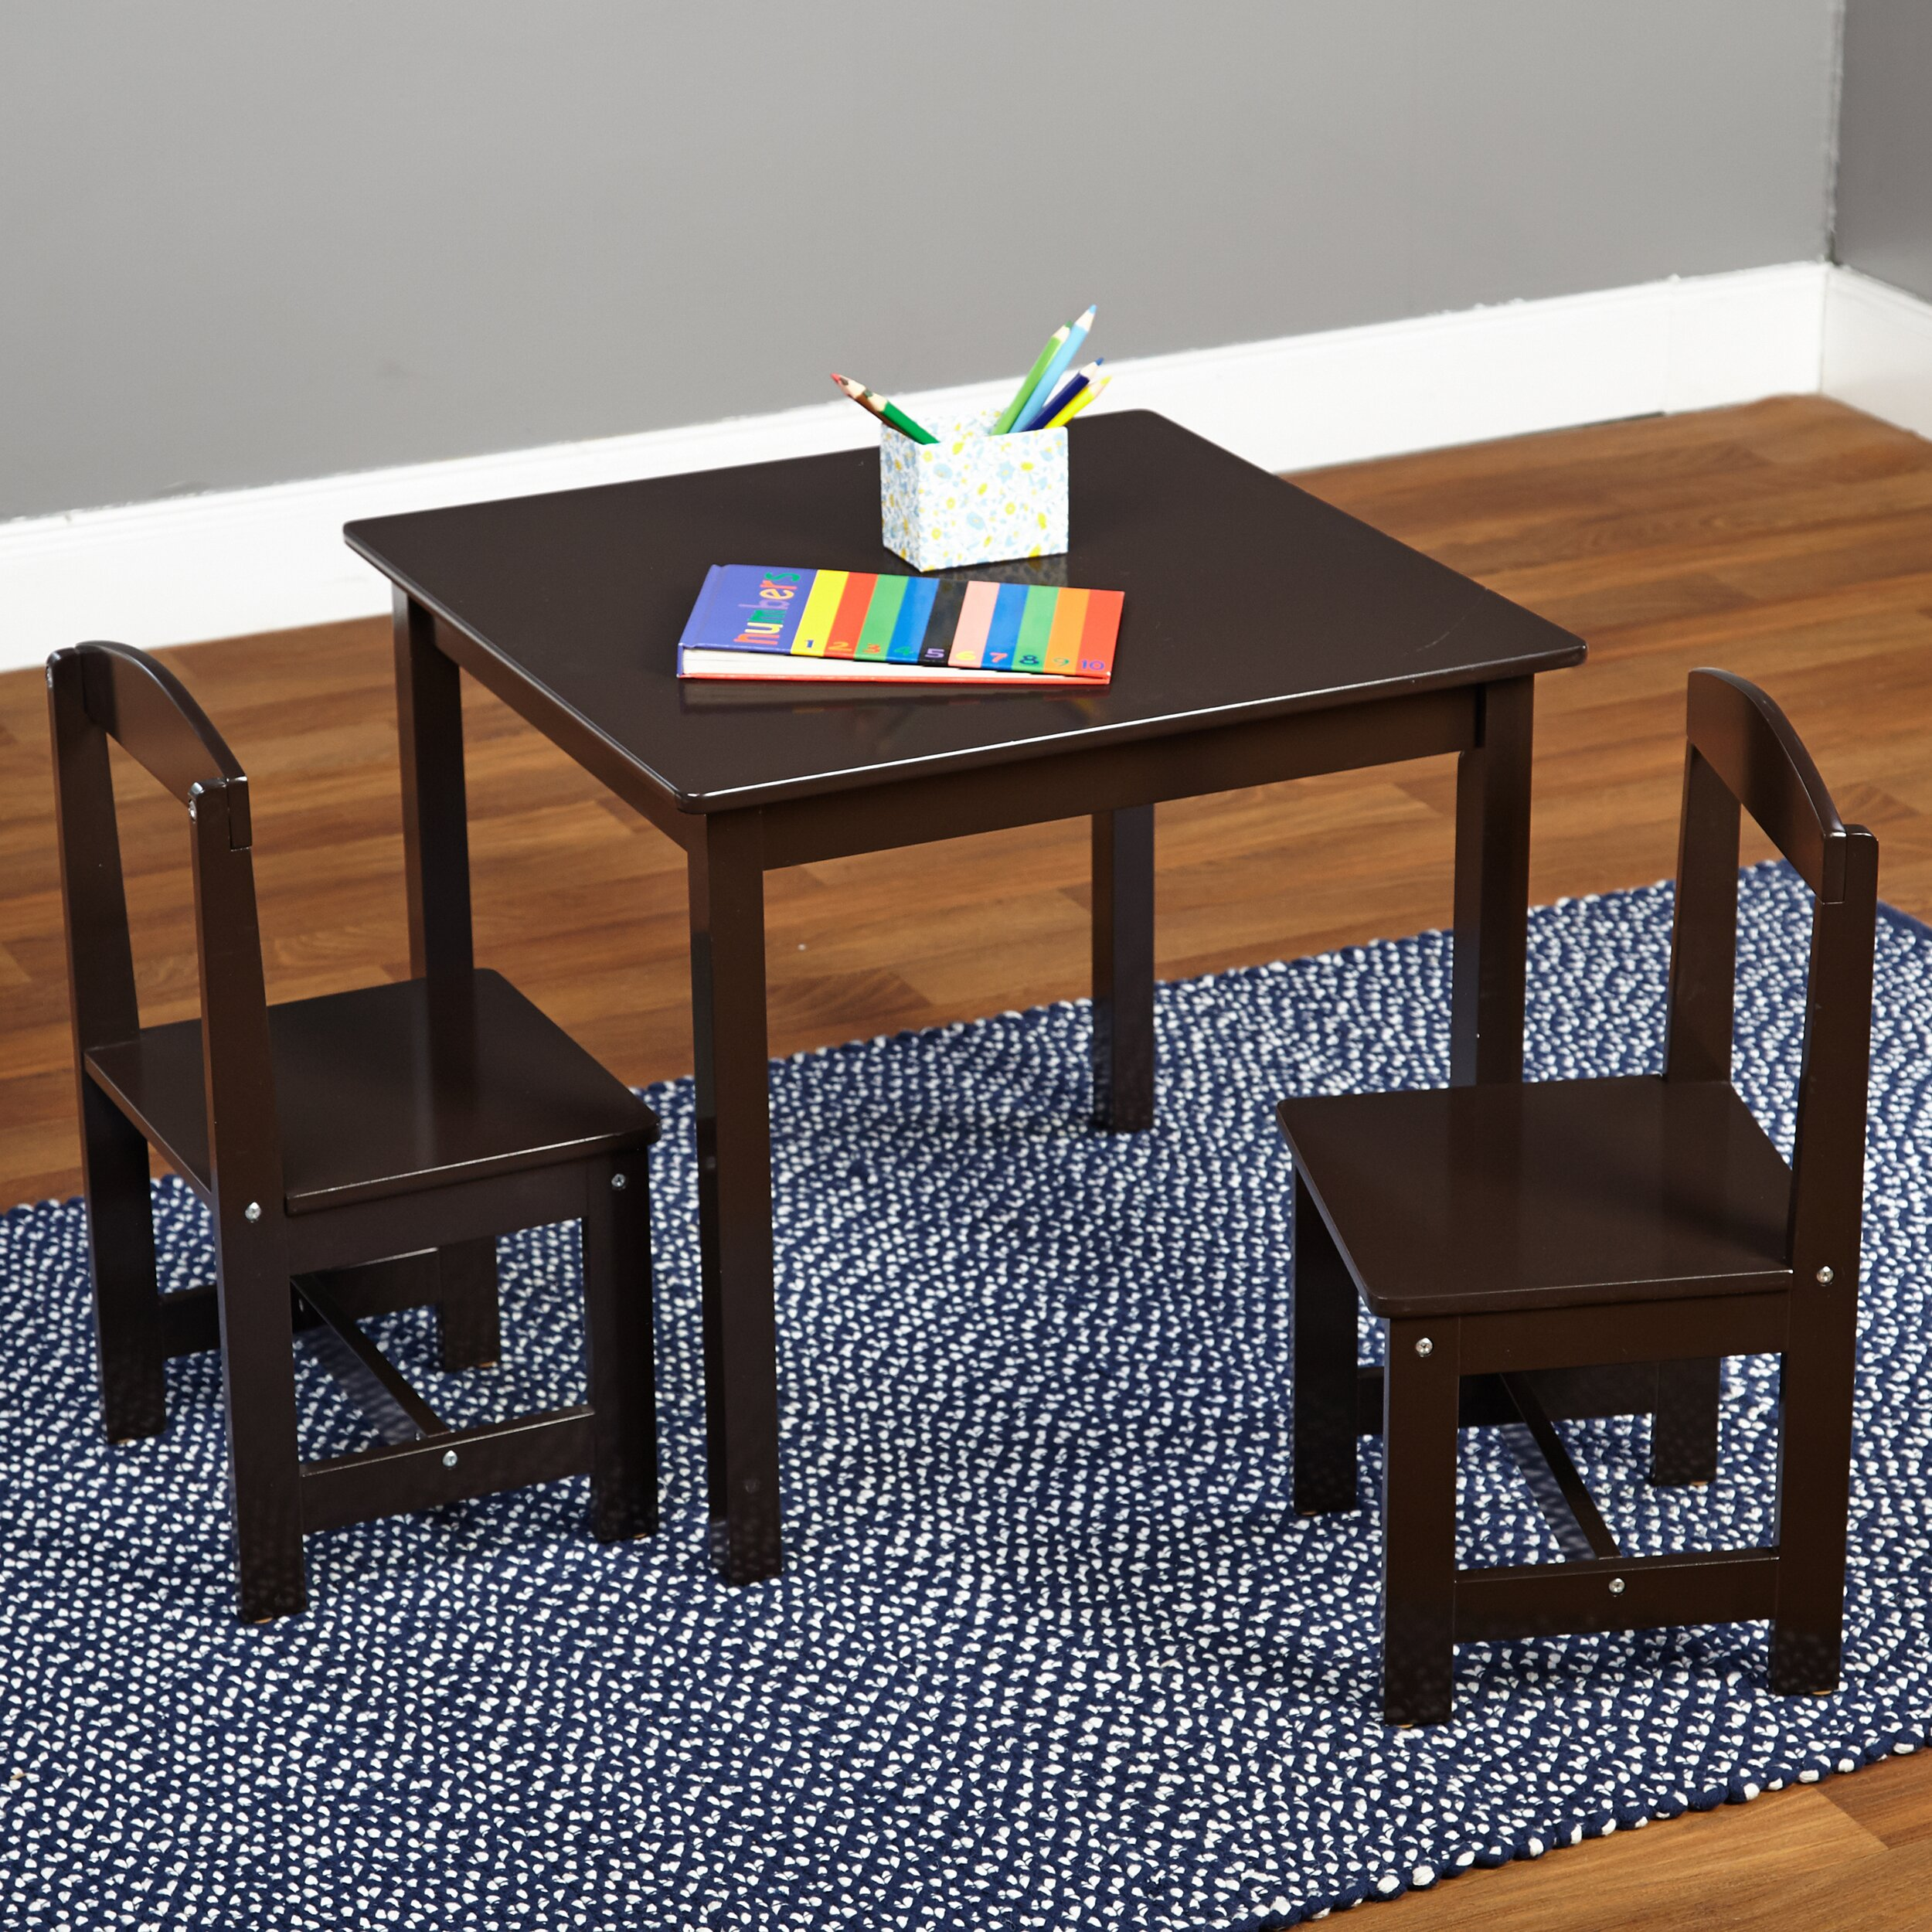 Table Set For Kids Tms Hayden Kids 3 Piece Square Table Chair Set Reviews Wayfair